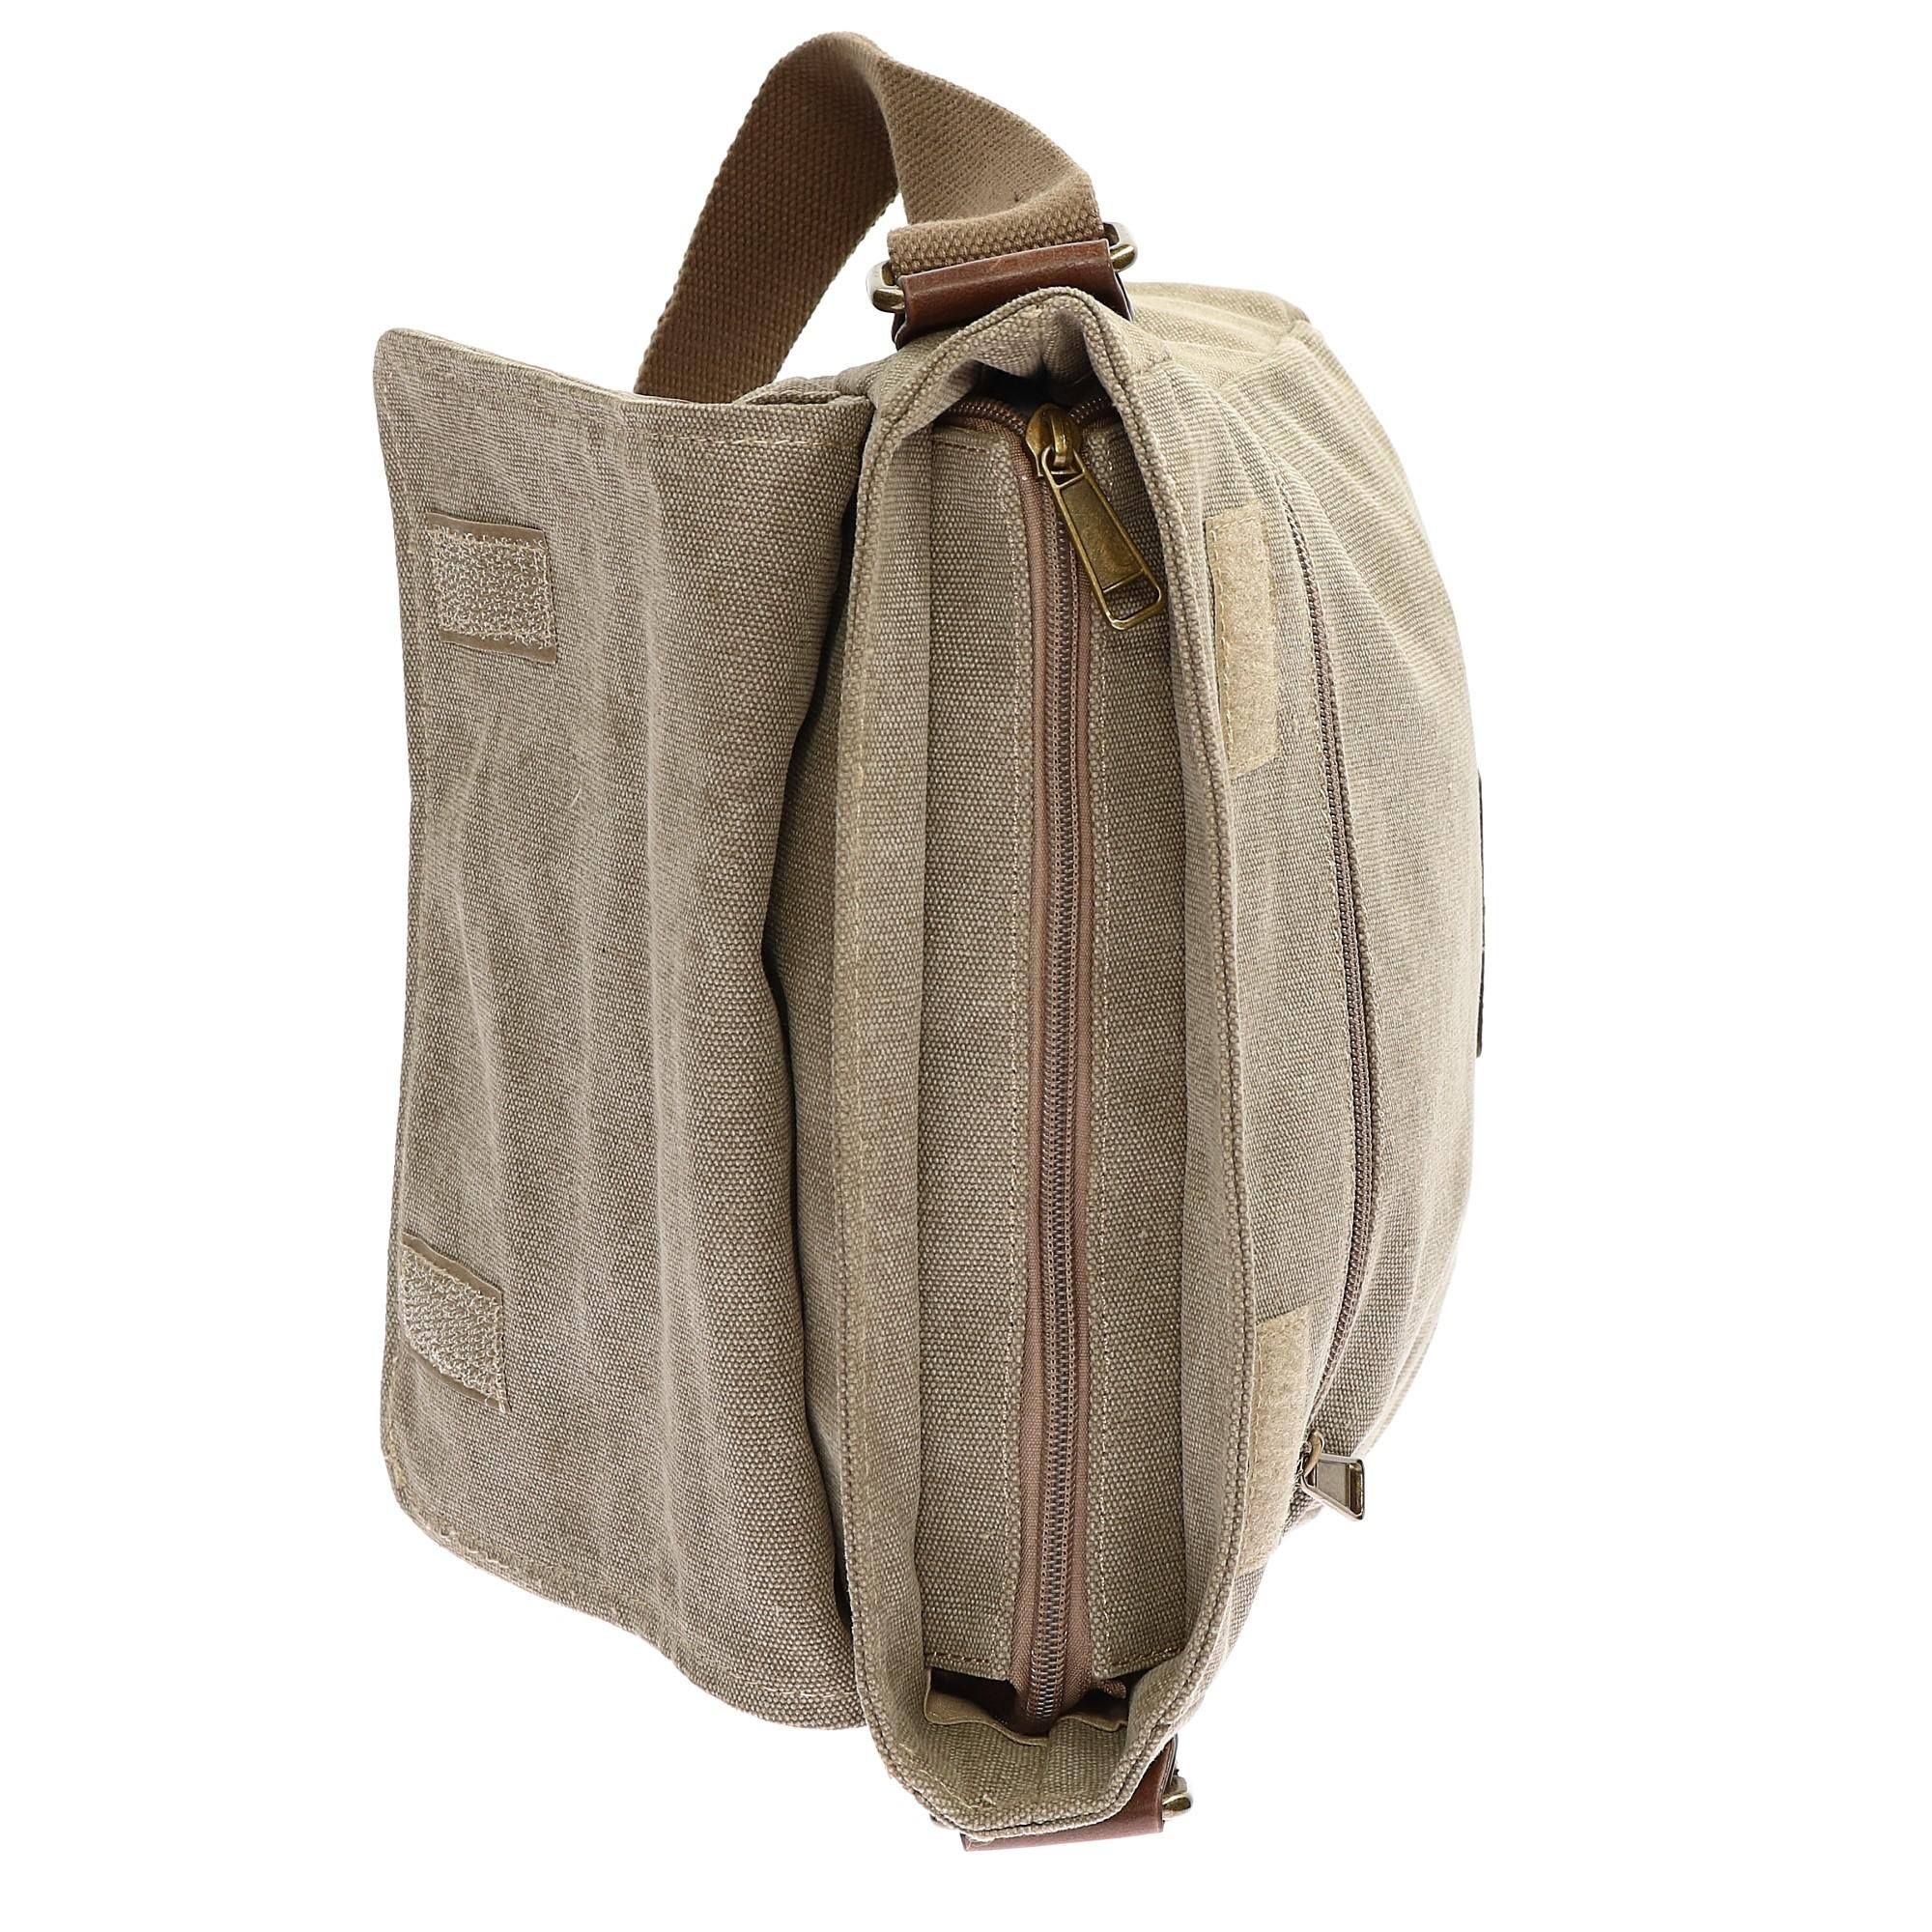 4a7437be43 Shop CargoIT Women s Cotton Canvas Crossbody Bag - one size - Free Shipping  On Orders Over  45 - Overstock - 21349933